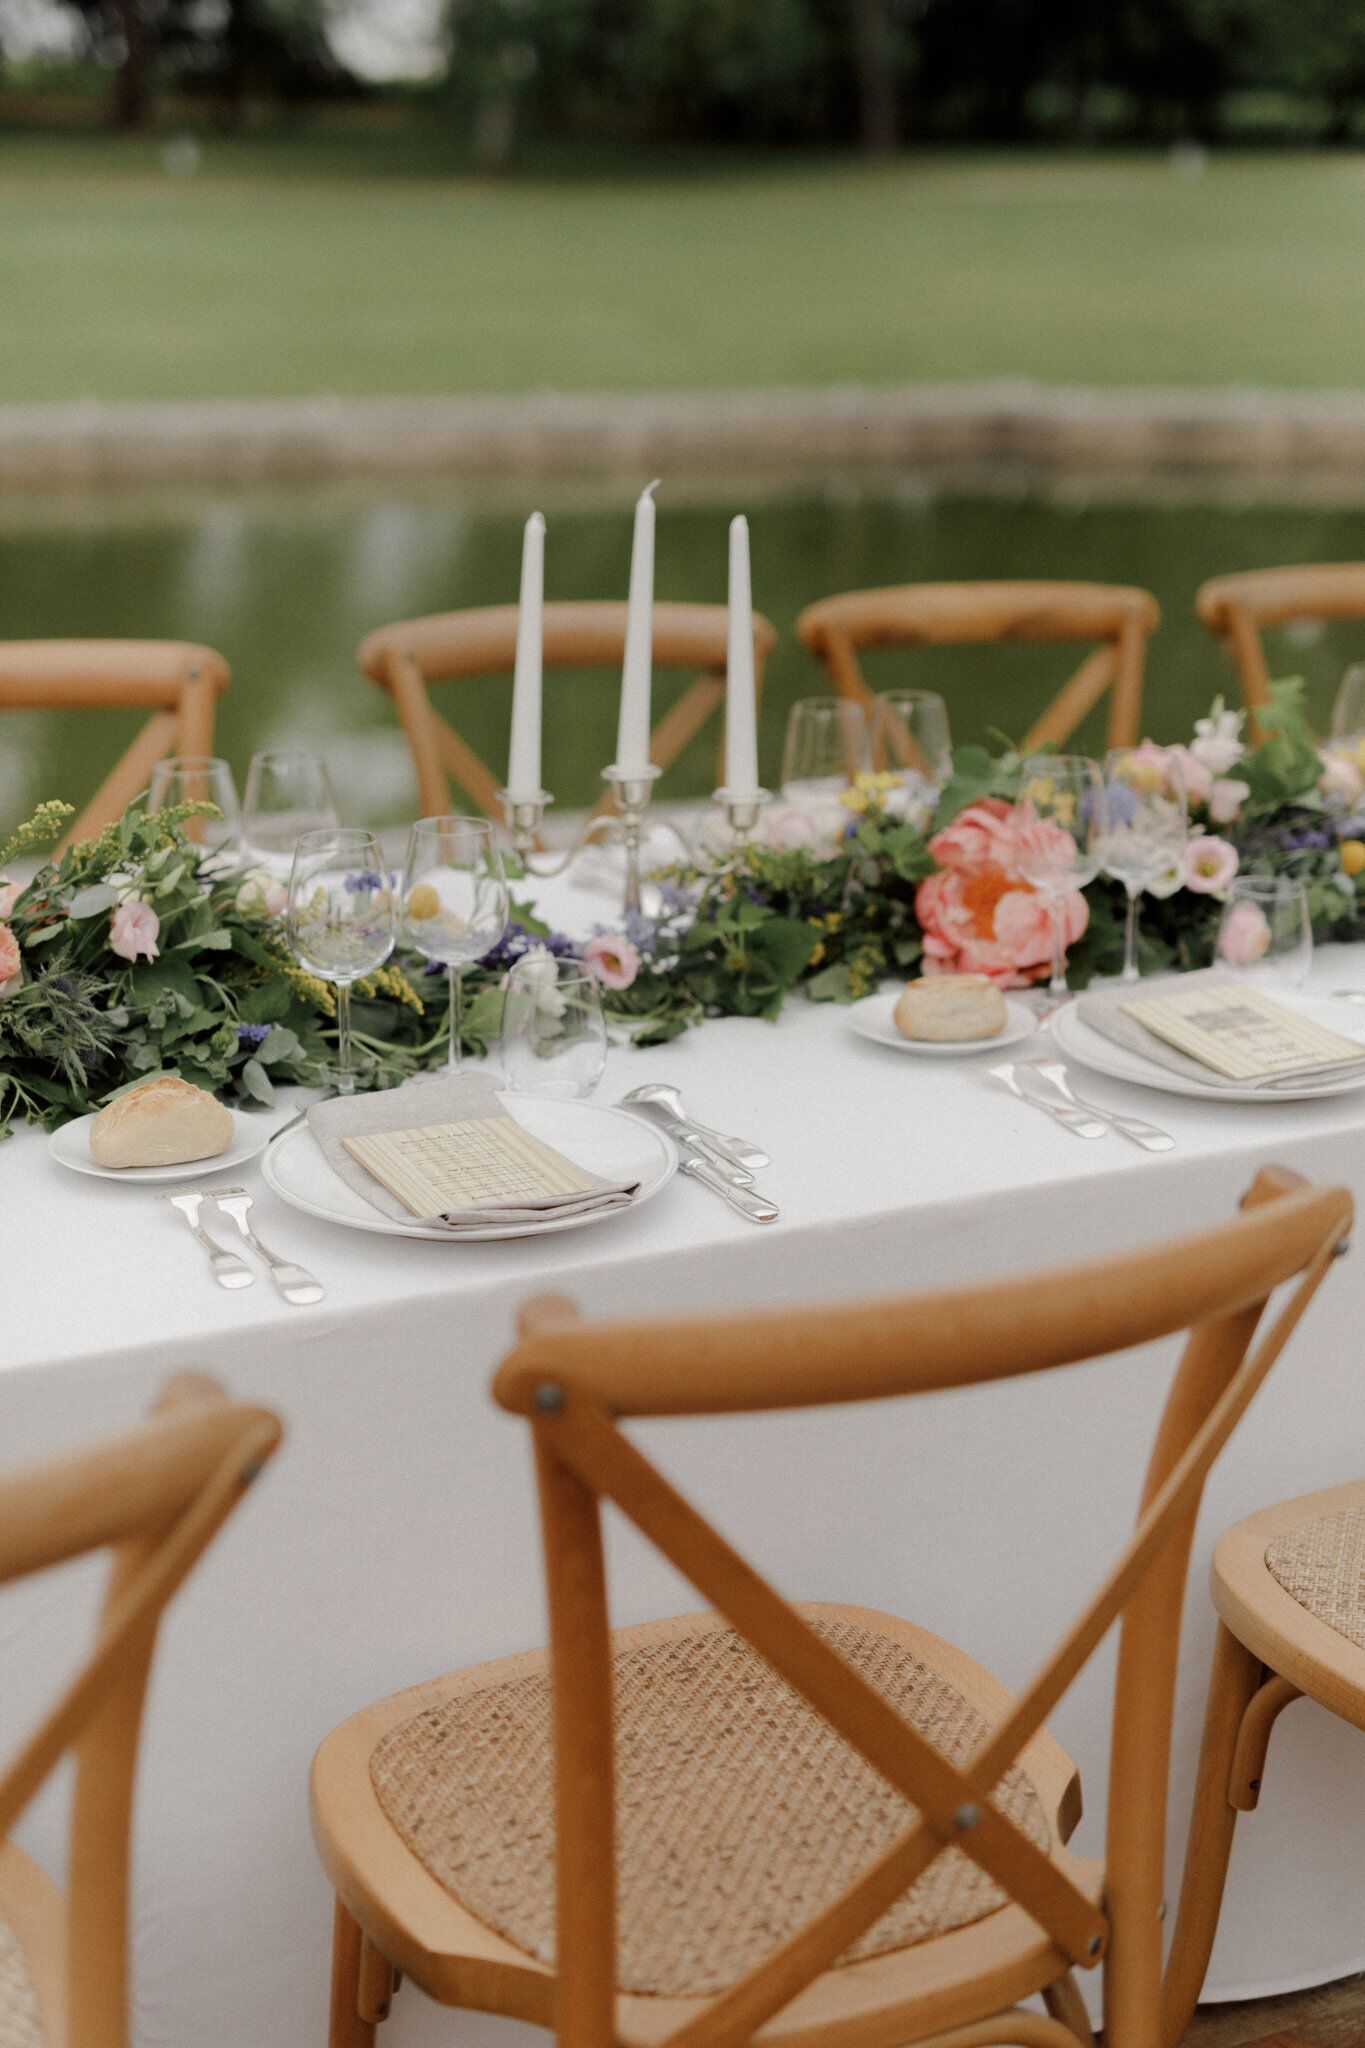 off-white linen with floral centerpieces and tall candlesticks